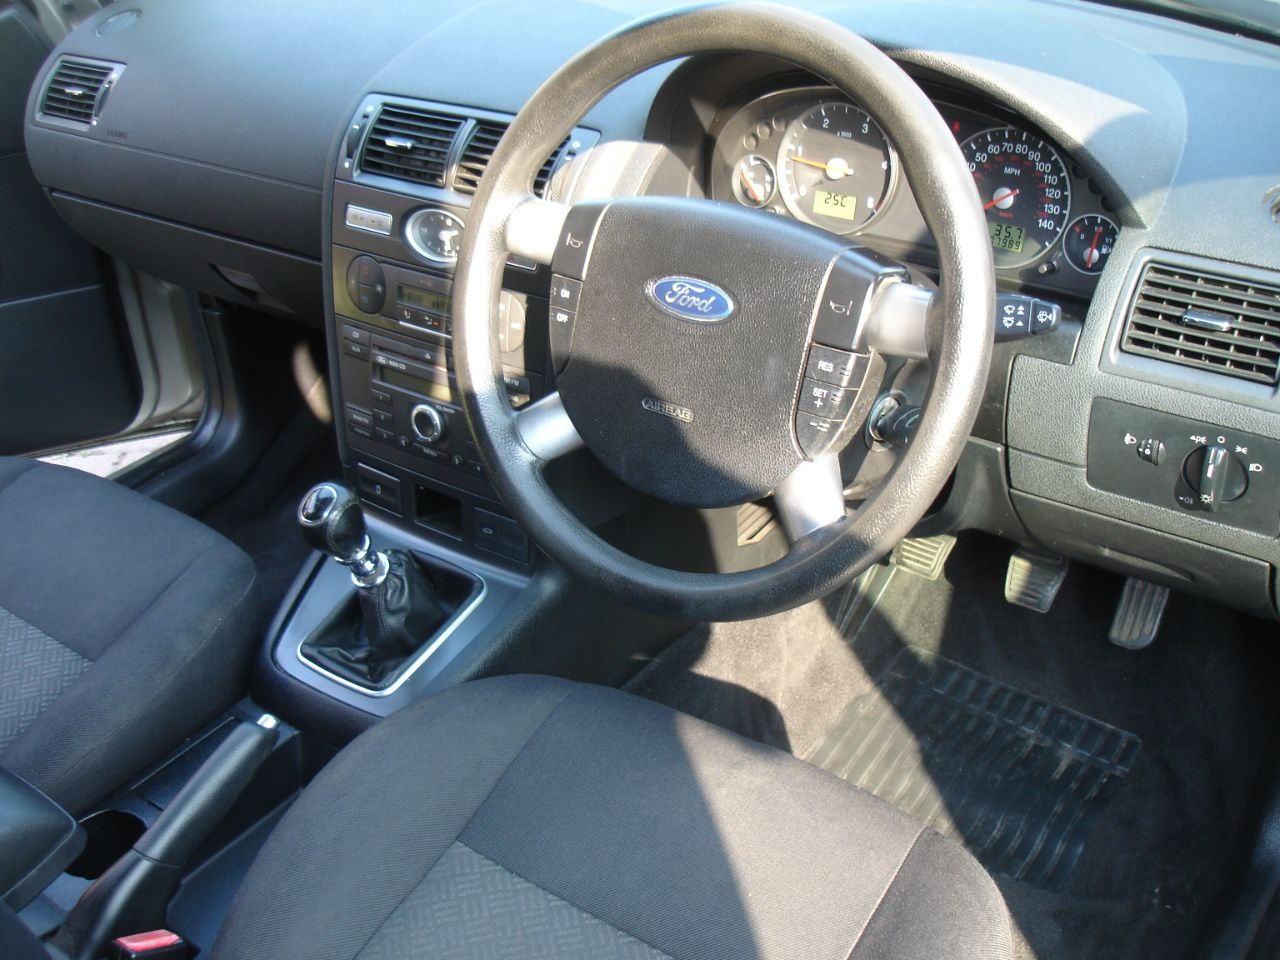 2005 Ford Mondeo 2.0TDCi 130 LX 5dr 6 Speed